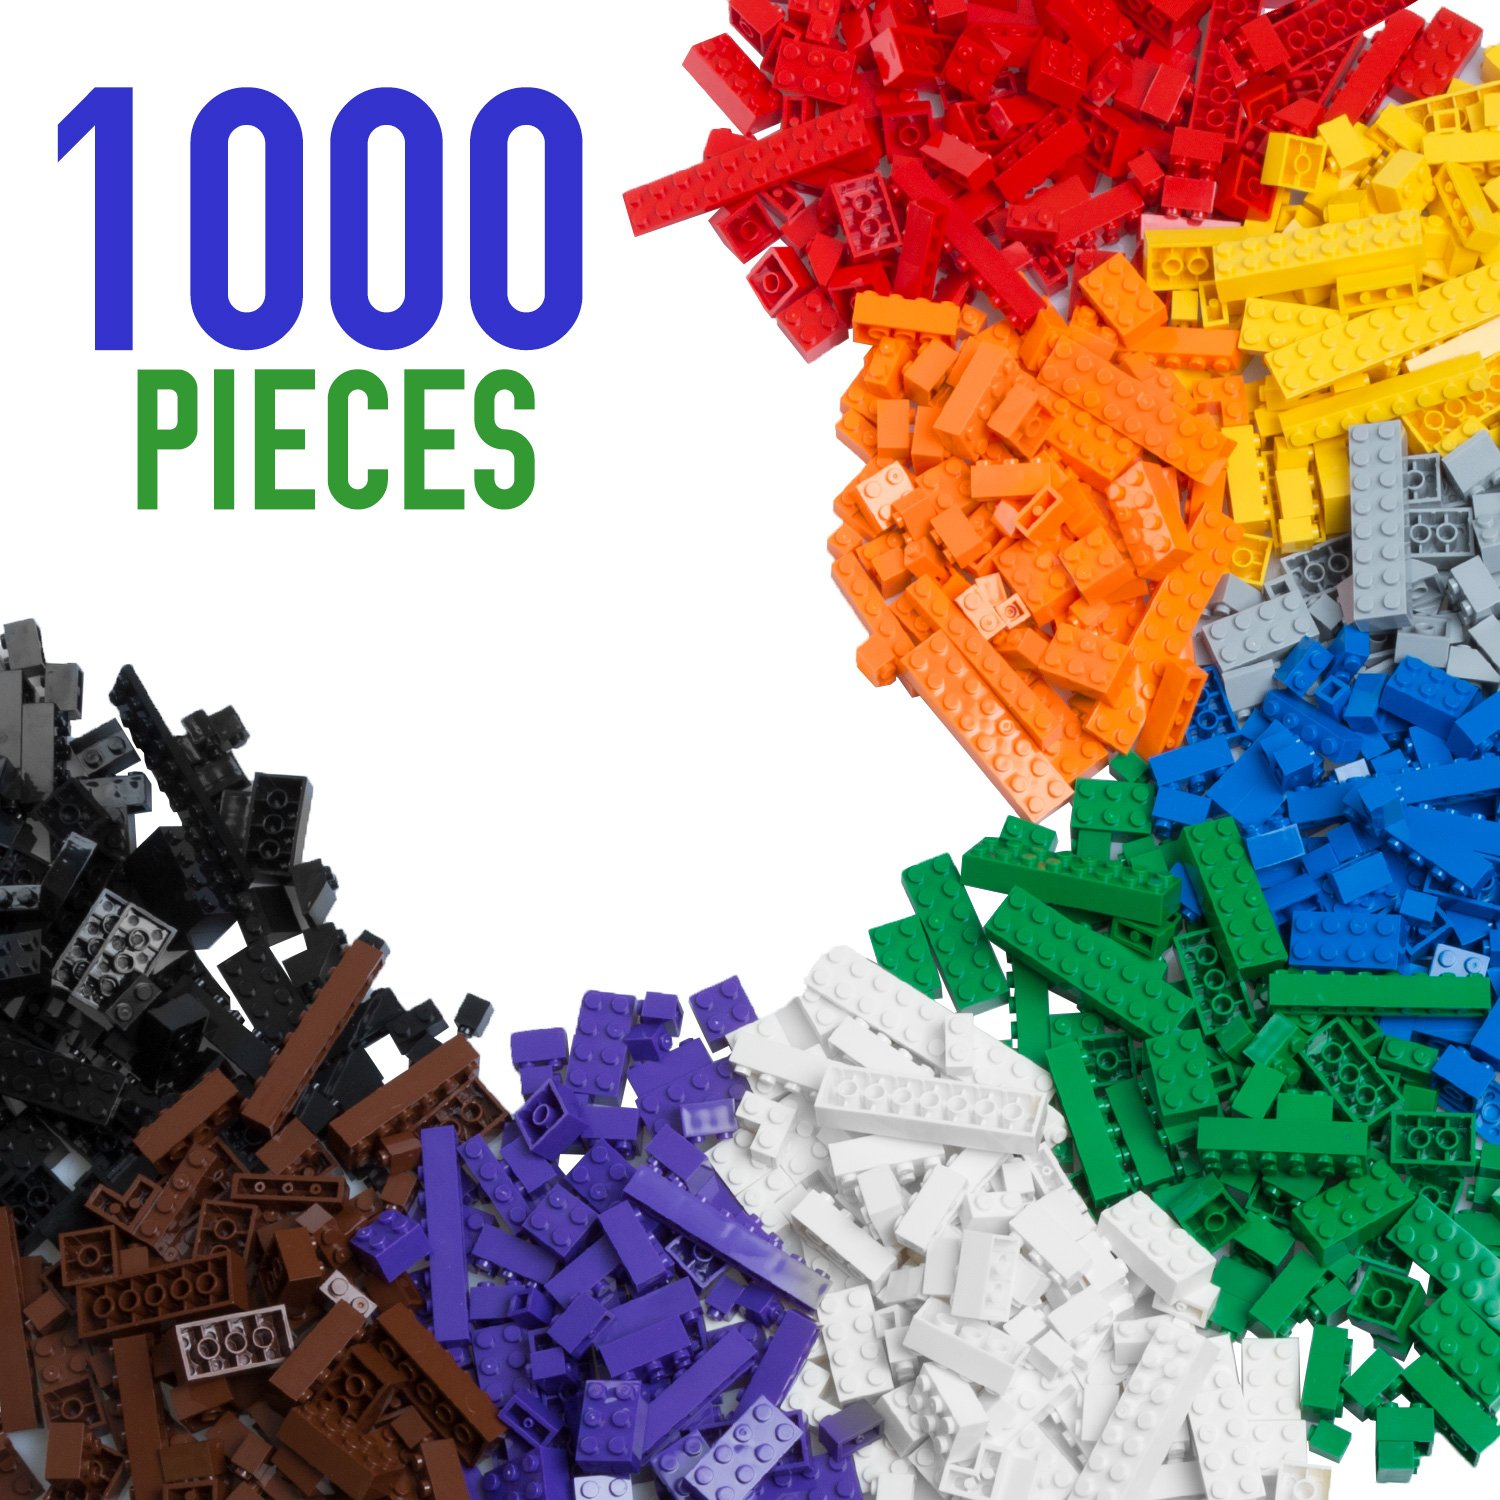 Barcaloo Building Bricks - 1,000 Piece Brick Building Kit - Compatible with all Major Brands Review